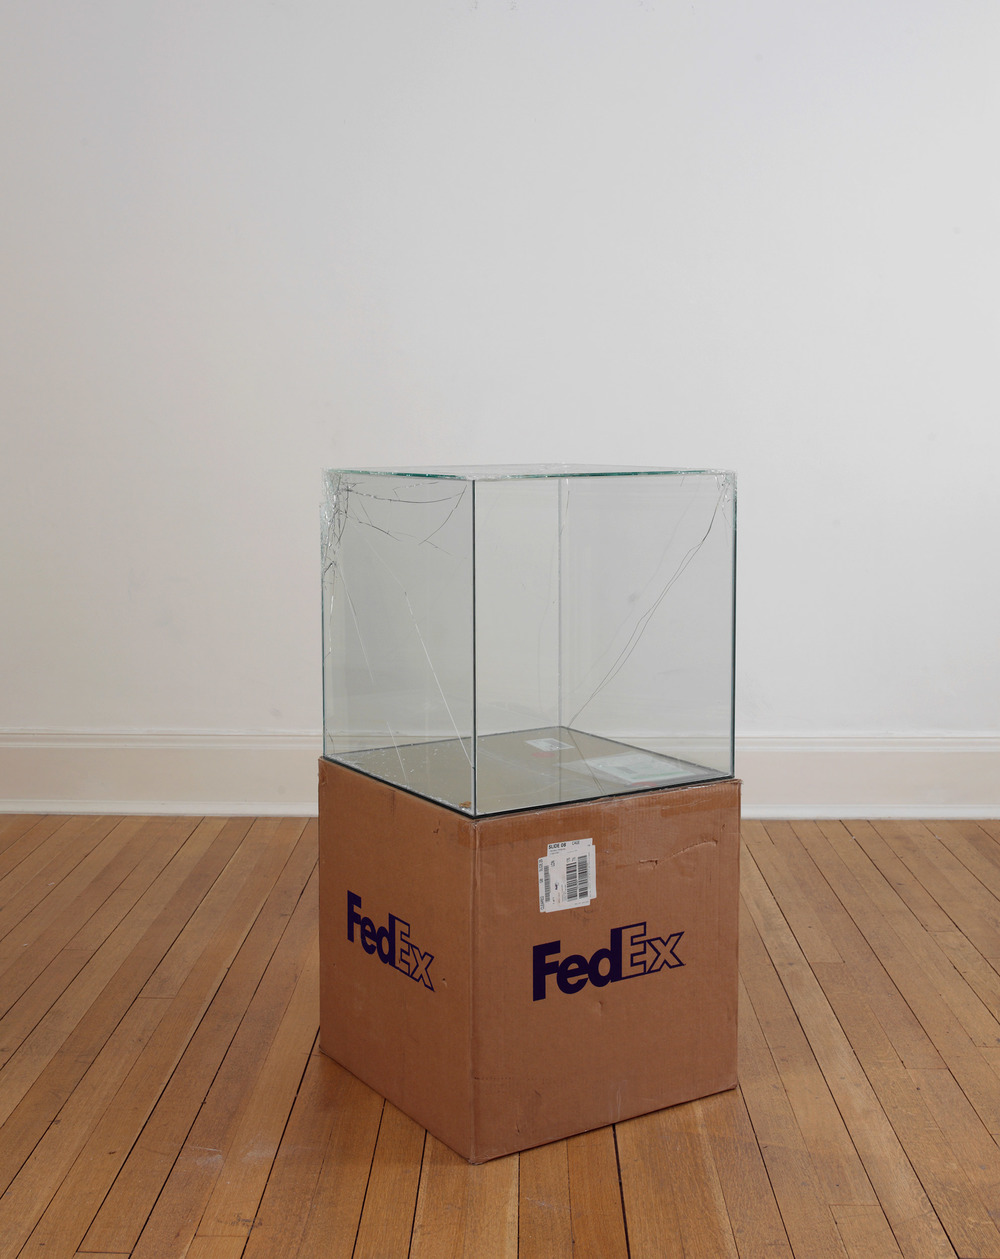 FedEx Large Kraft Box 2008 FEDEX 330510 REV 6/08 GP, International Priority, Los Angeles–London trk#868587728050, October 02–05, 2009    2009–   Laminated glass, FedEx shipping box, accrued FedEx shipping and tracking labels, silicone, metal, tape  24 x 24 x 24 inches   Production Stills, 2009